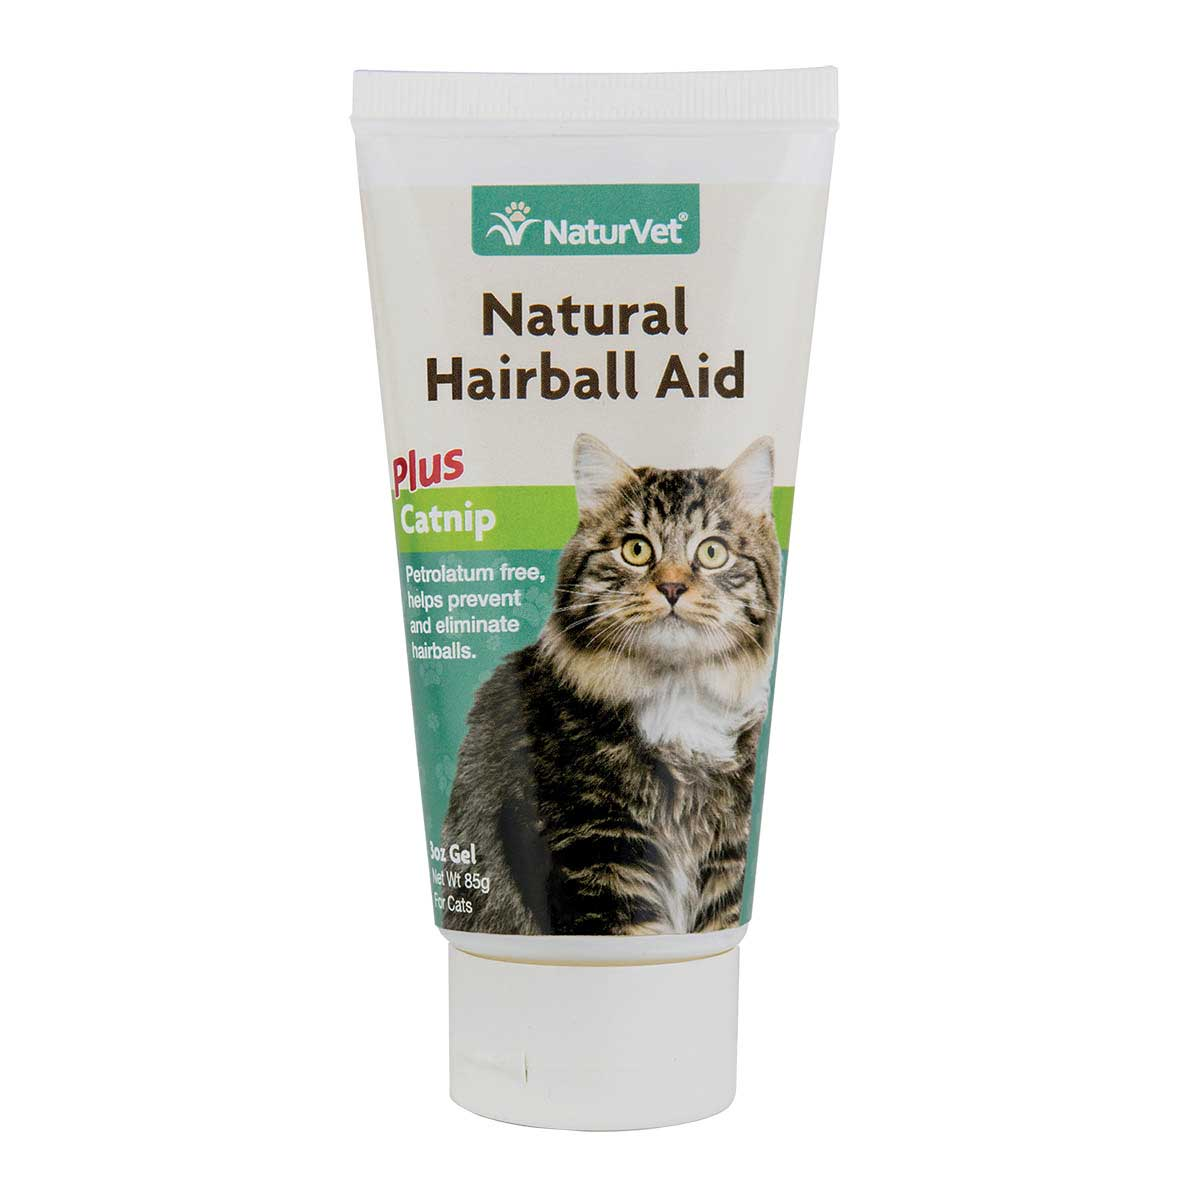 NaturVet Natural Hairball Aid with Catnip Gel 3 oz